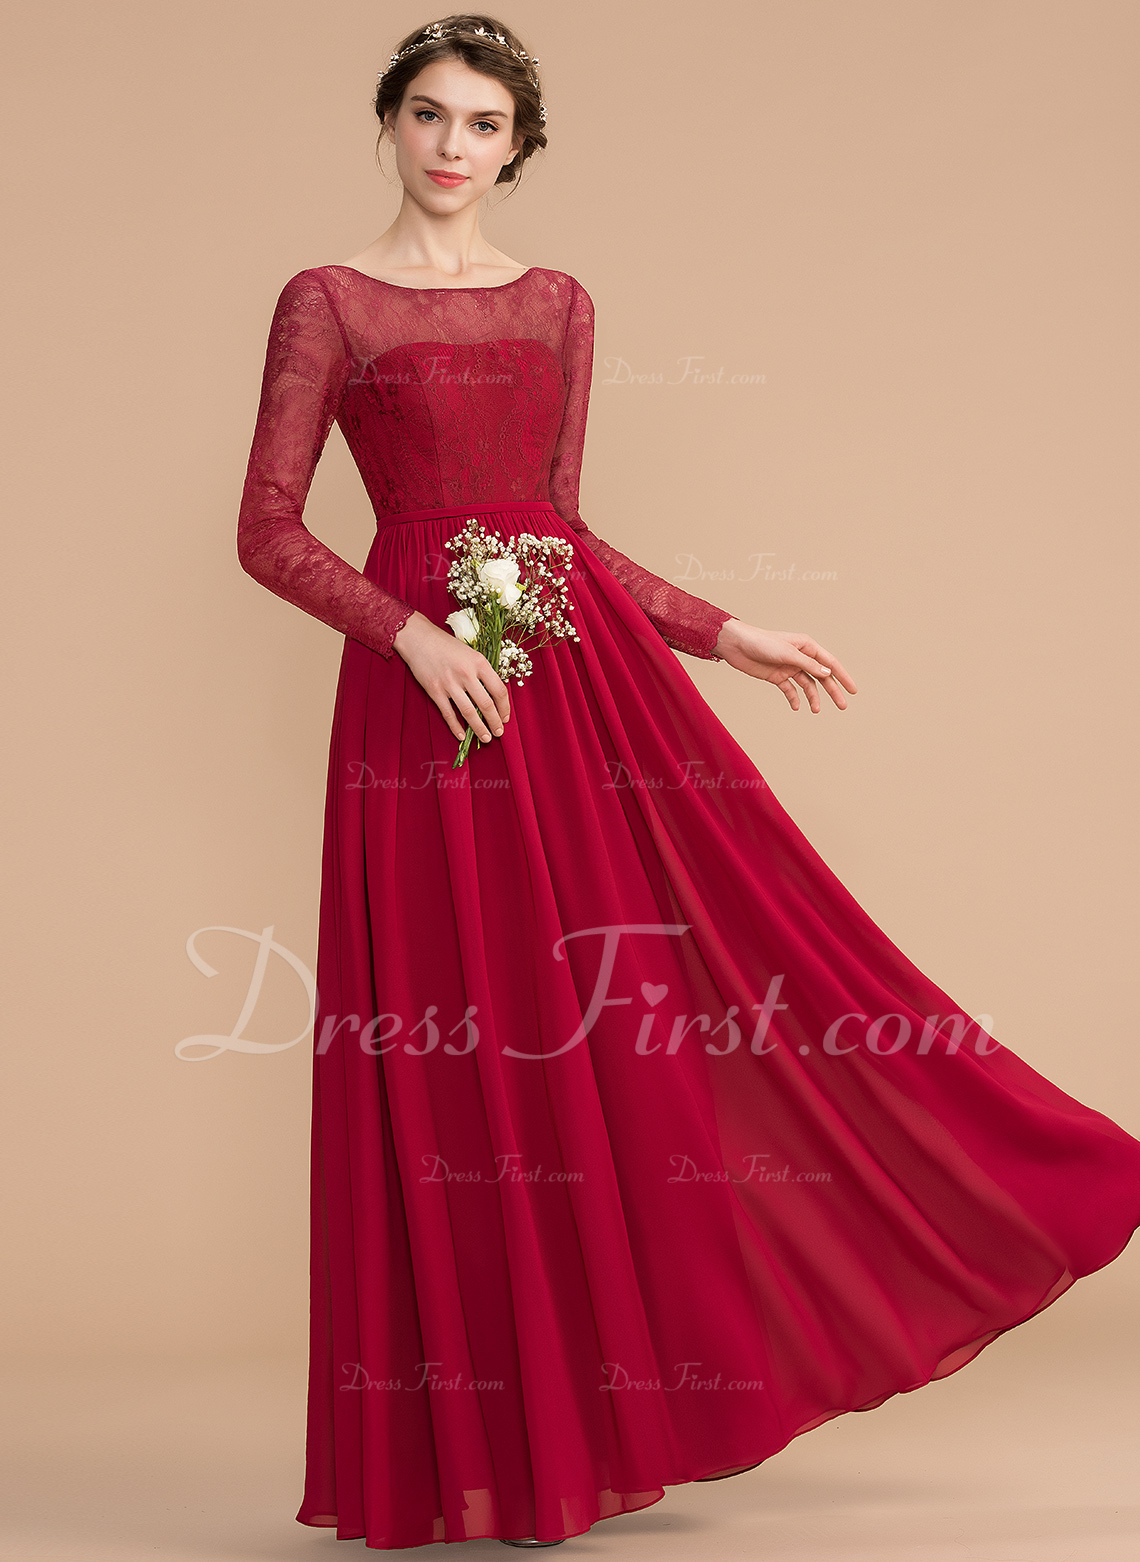 c647494f73 A-Line Scoop Neck Floor-Length Chiffon Lace Bridesmaid Dress  176769